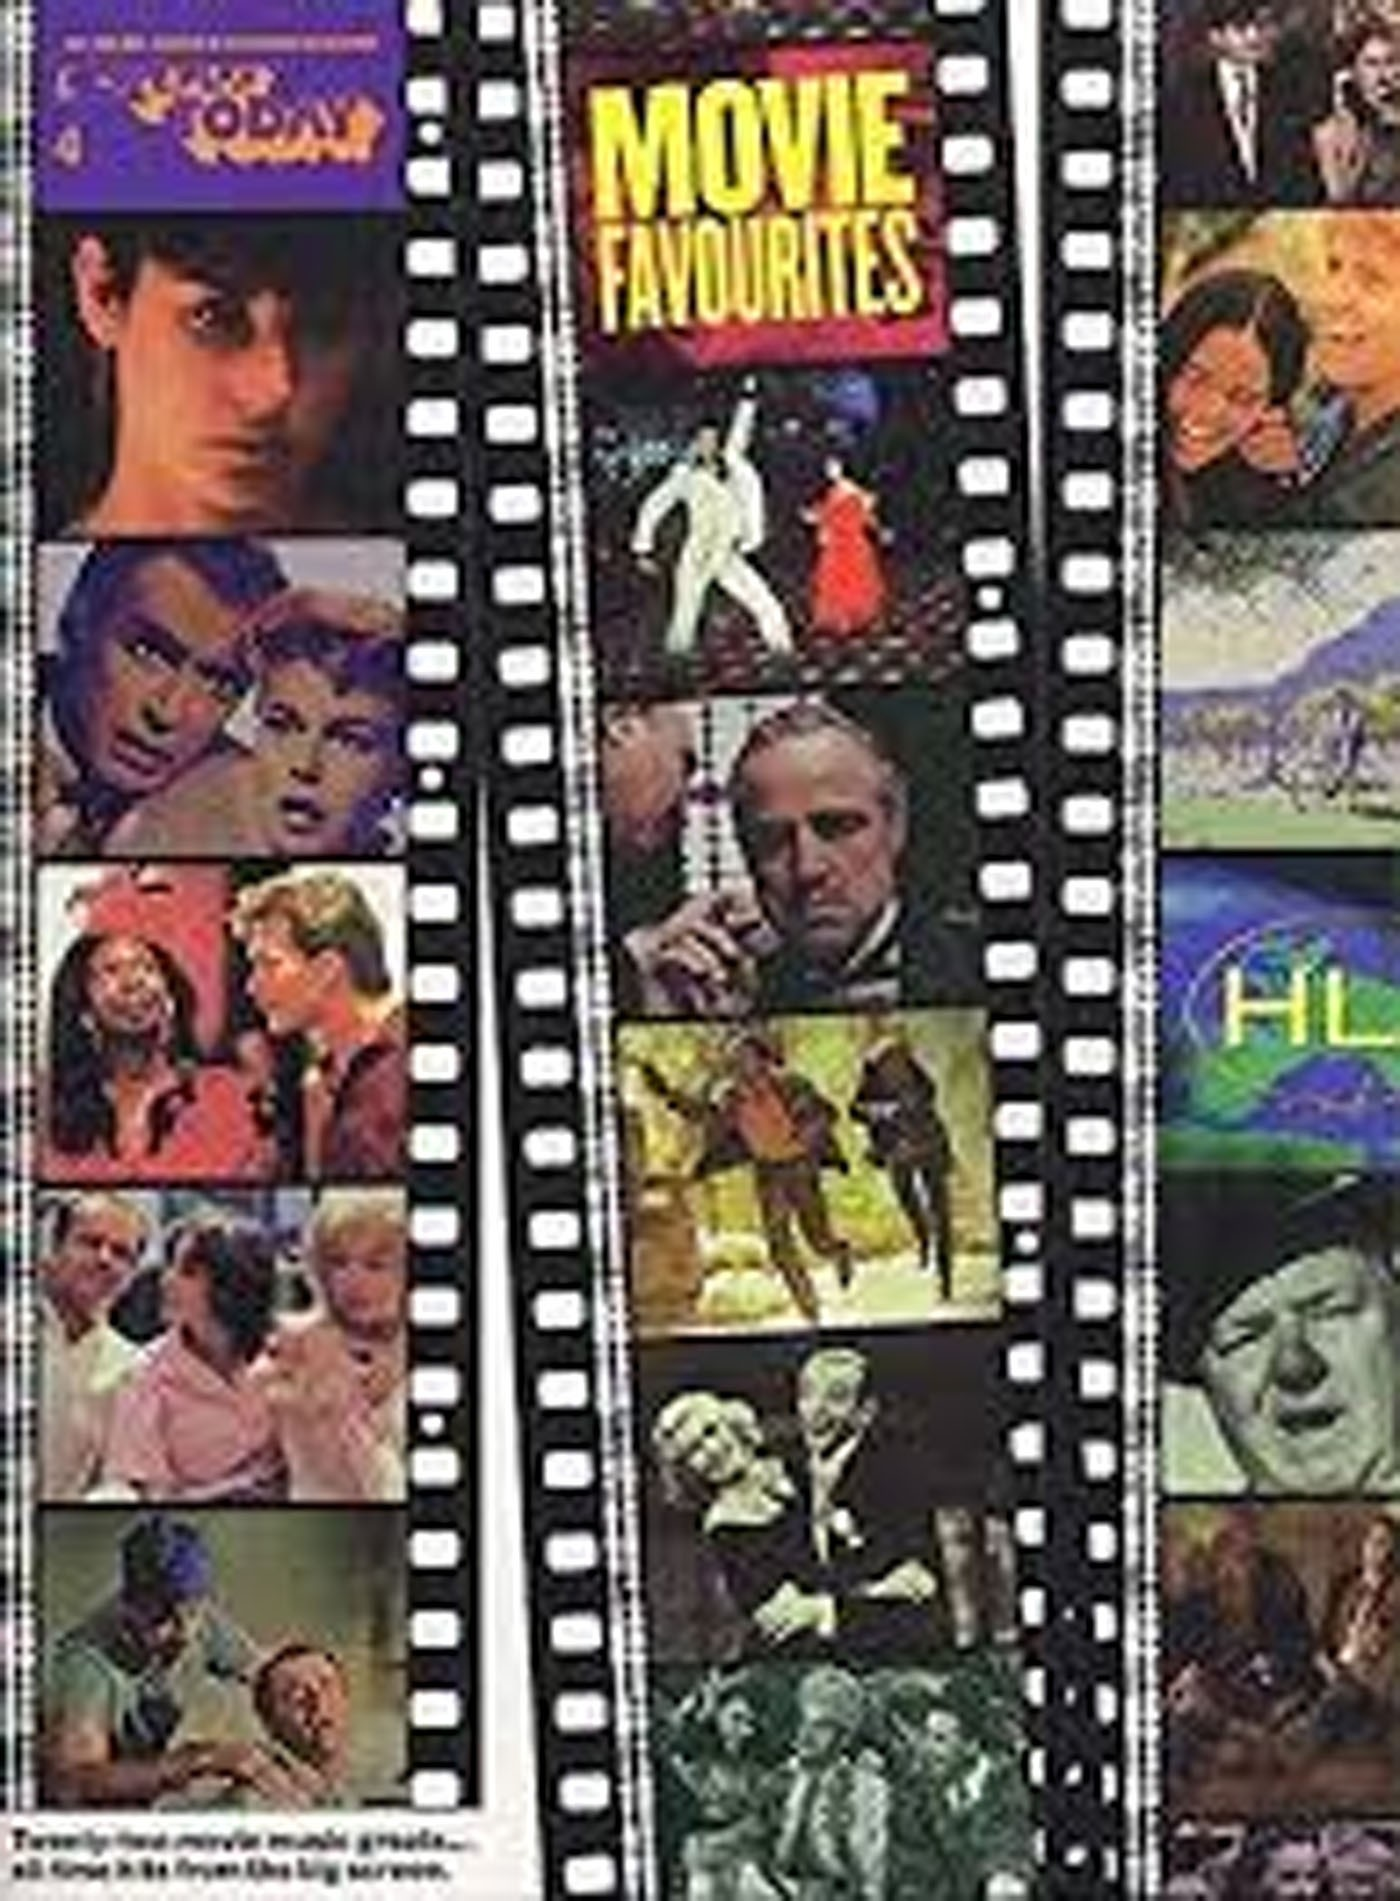 Movie Favourites E-Z Play Today Book 4 Big Notes Keyboard Film Soundtracks S158